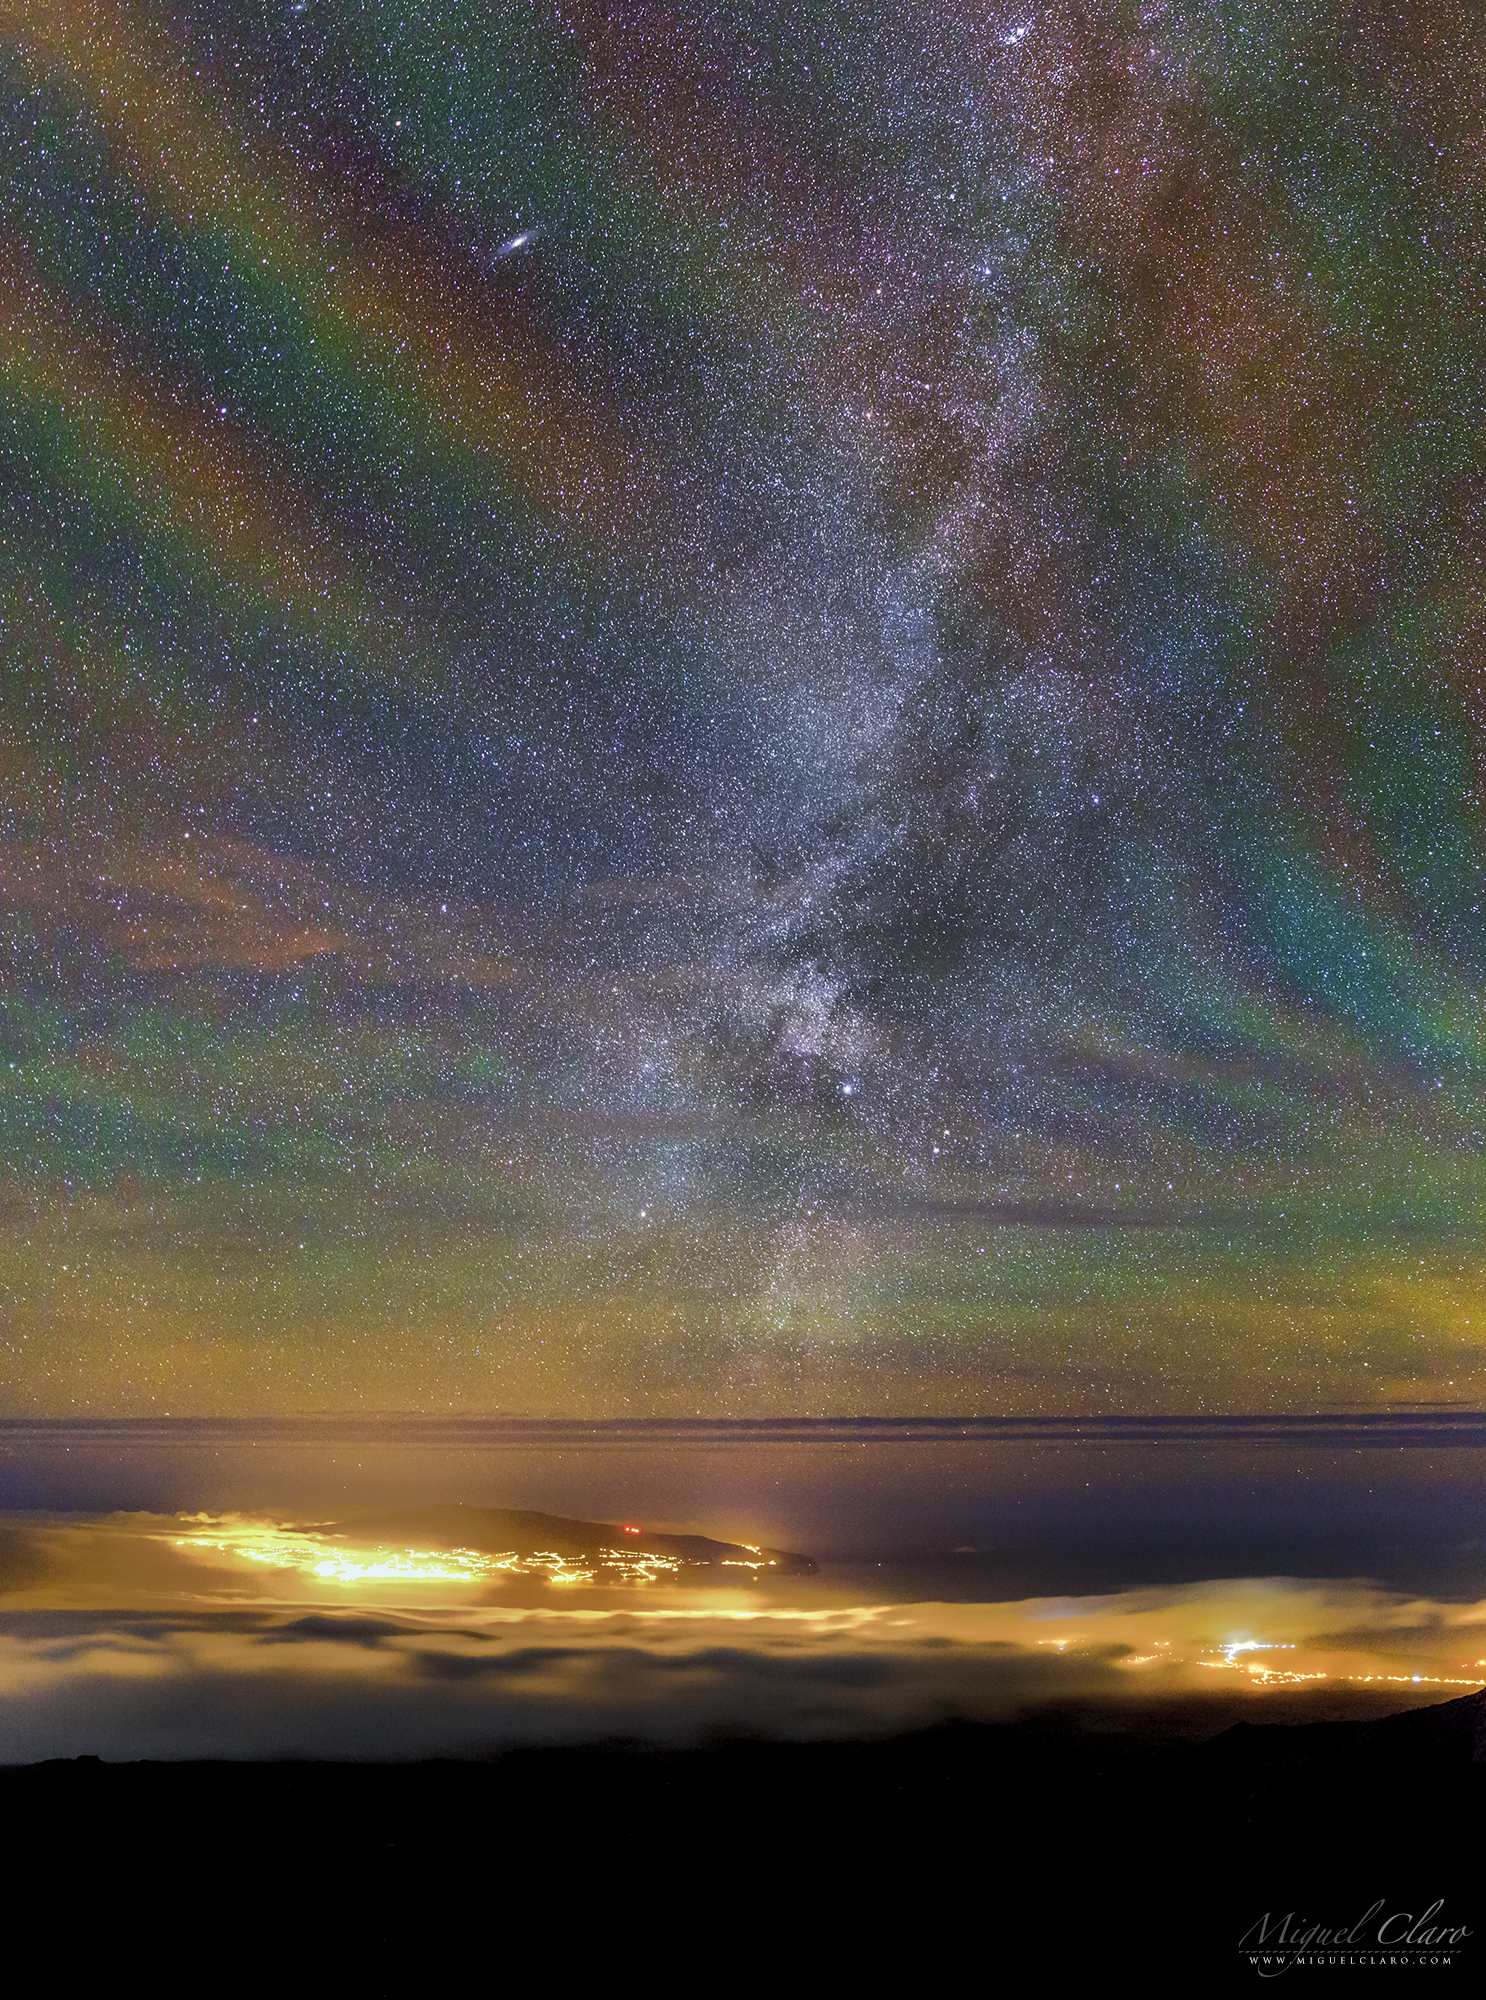 Incredible! Skywatcher Captures Colorful Rainbow Airglow Over Azores Island